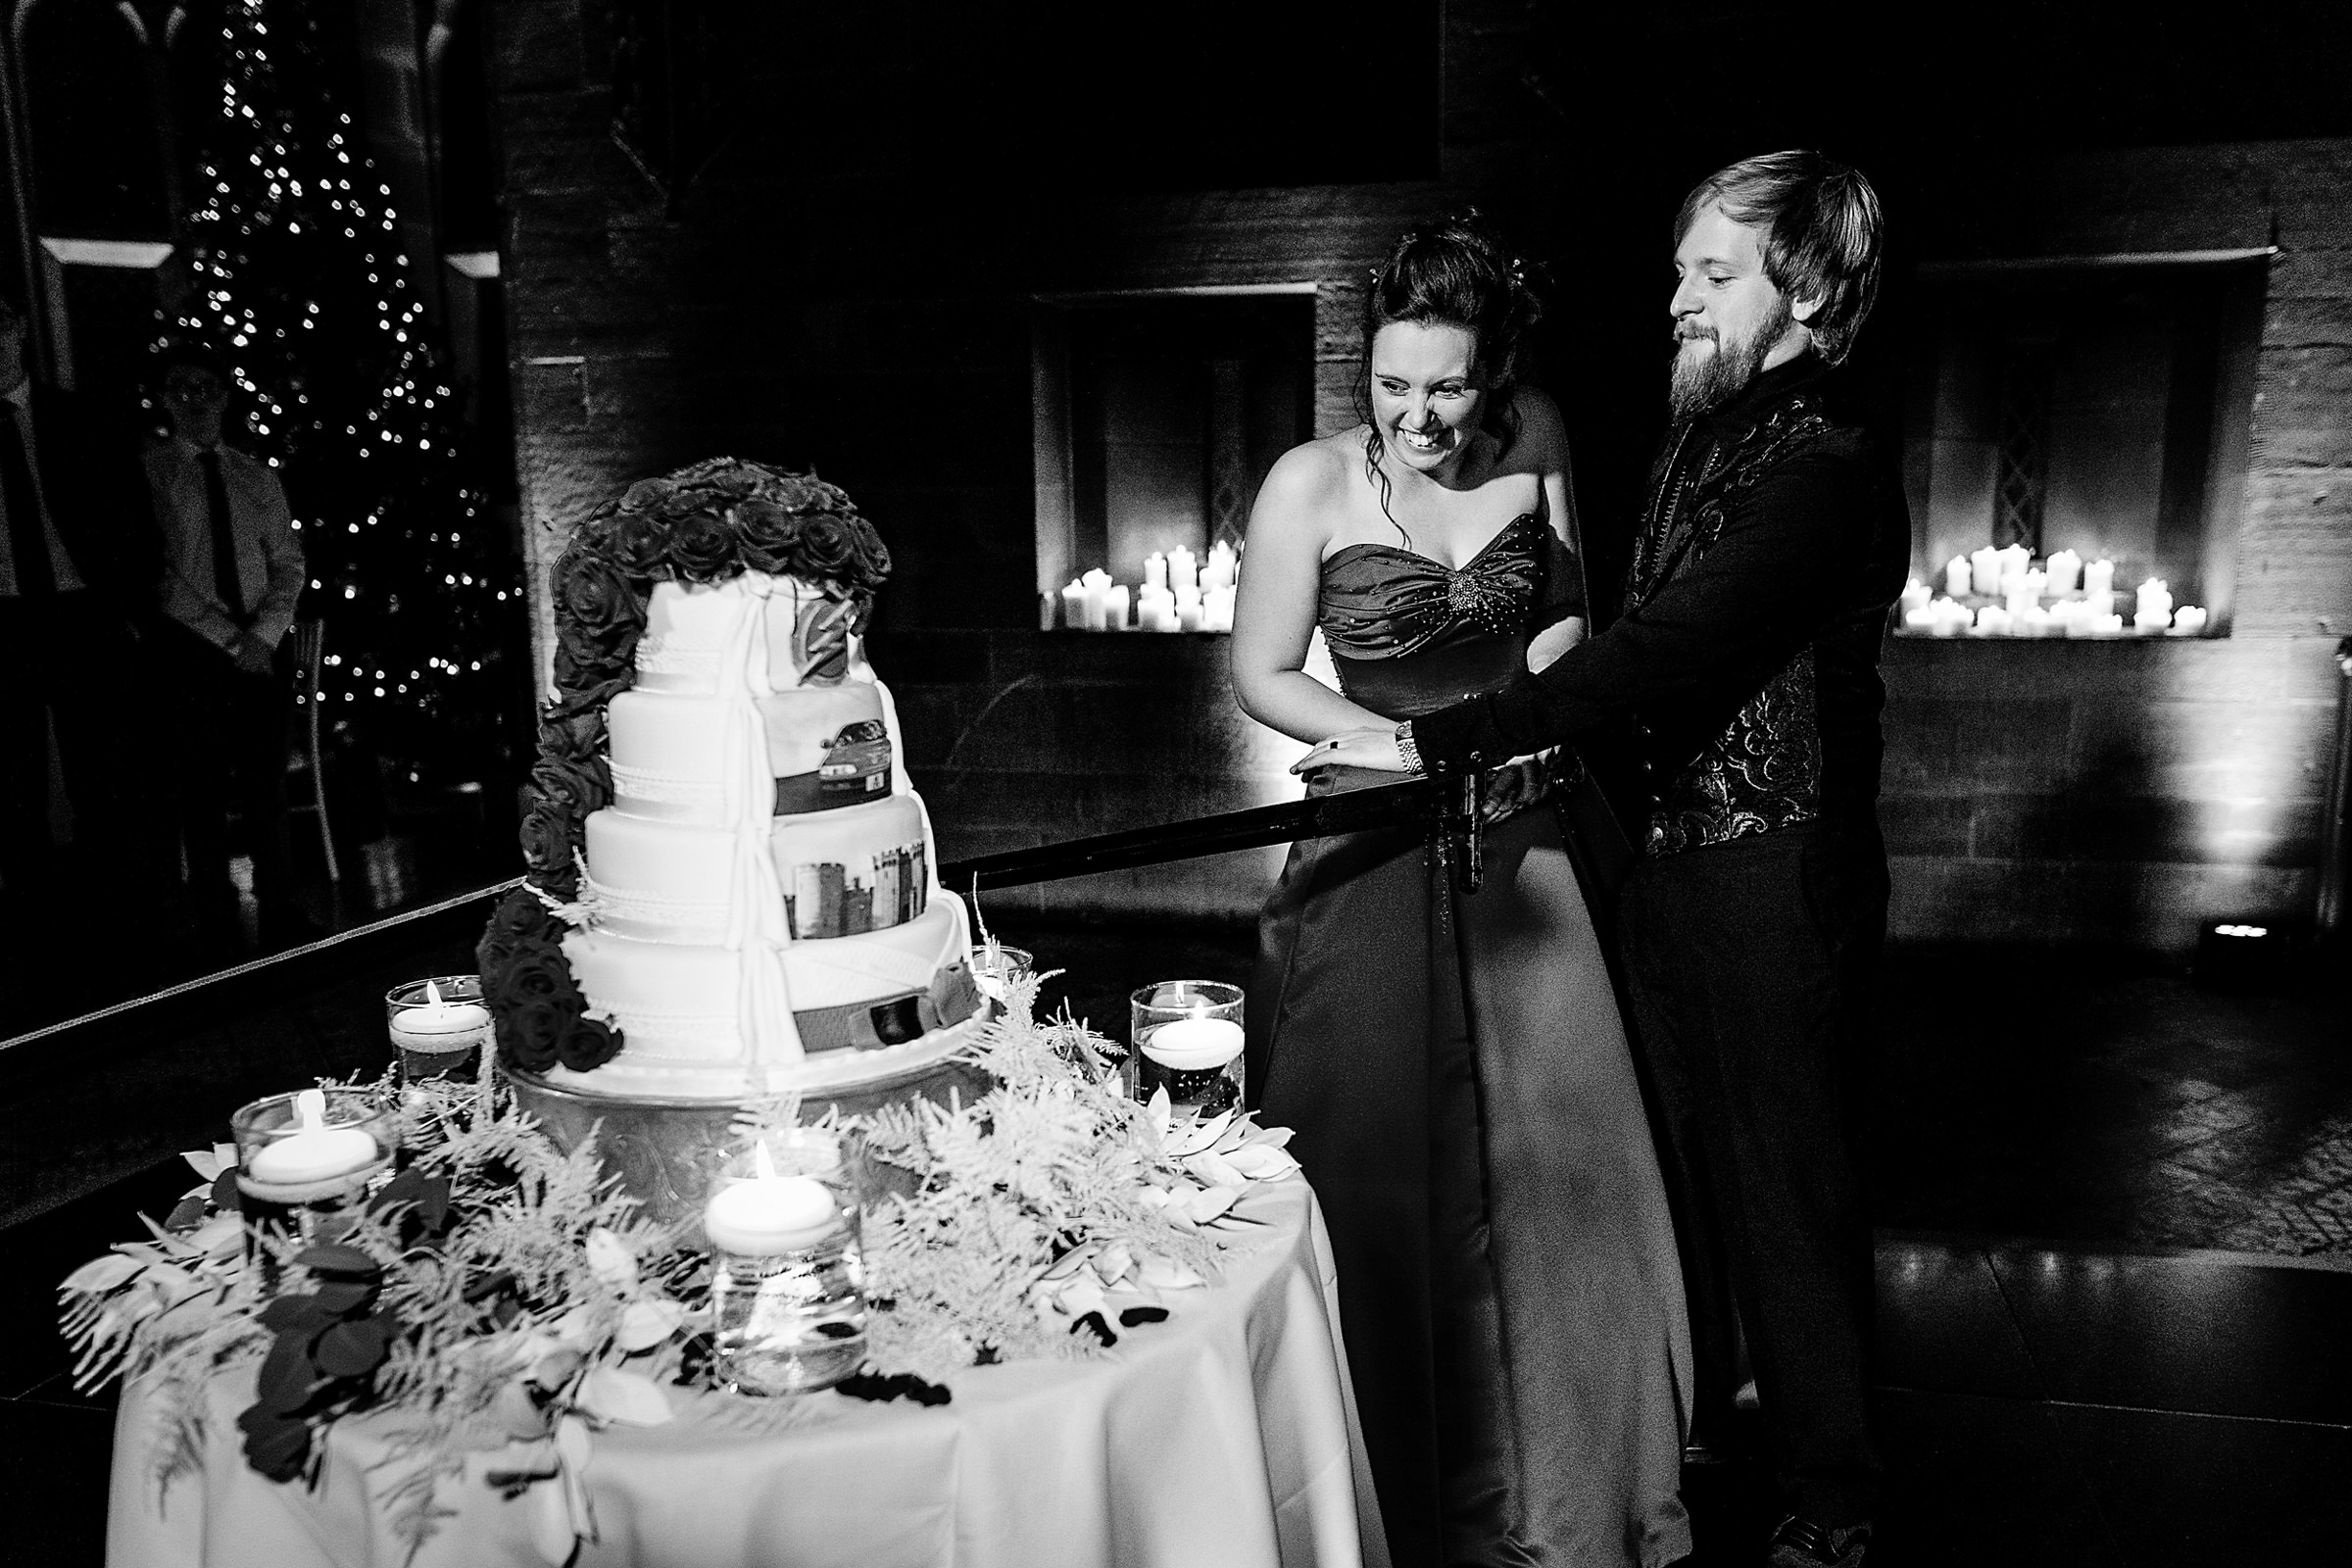 Cake cutting with sword - photo by Emma + Rich